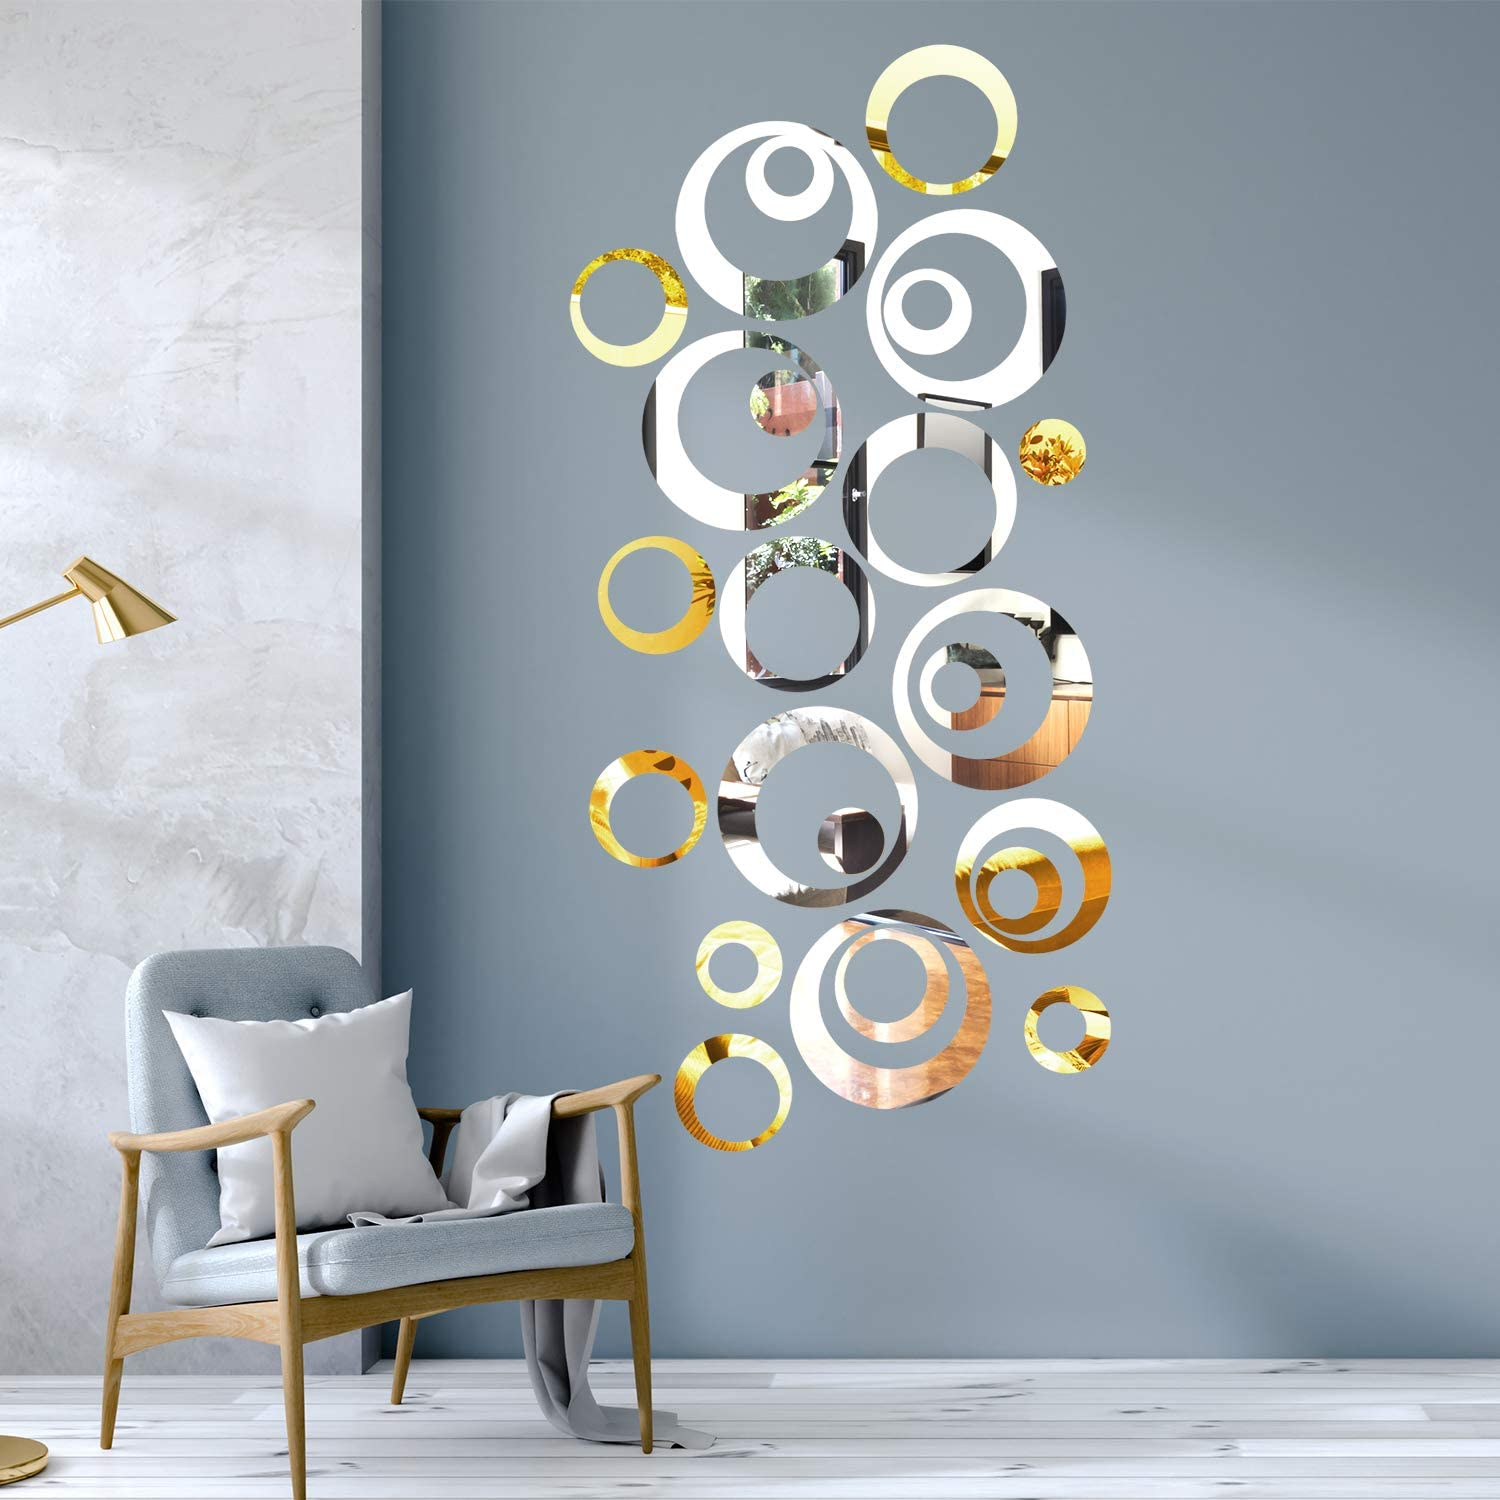 Aneco 48 Pieces DIY Circle Mirror Wall Decals Removable Acrylic Mirror Style Stickers Self Adhesive Circle Mirror Decal for Home Decor